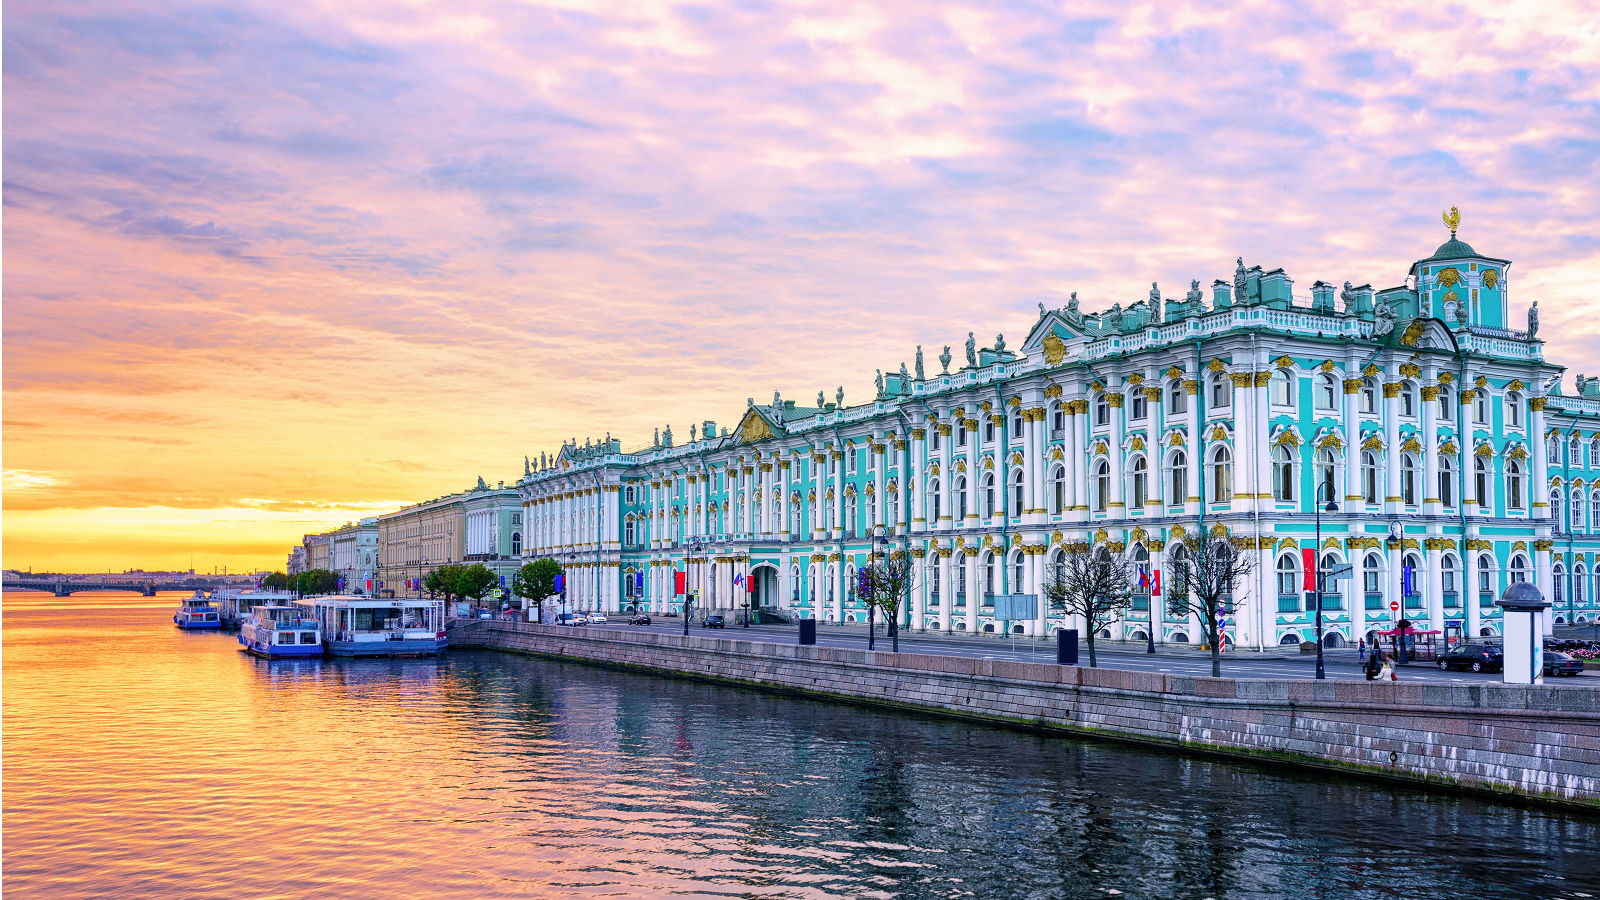 Hermitage Museum in St. Petersburg during White Nights Evening Tour